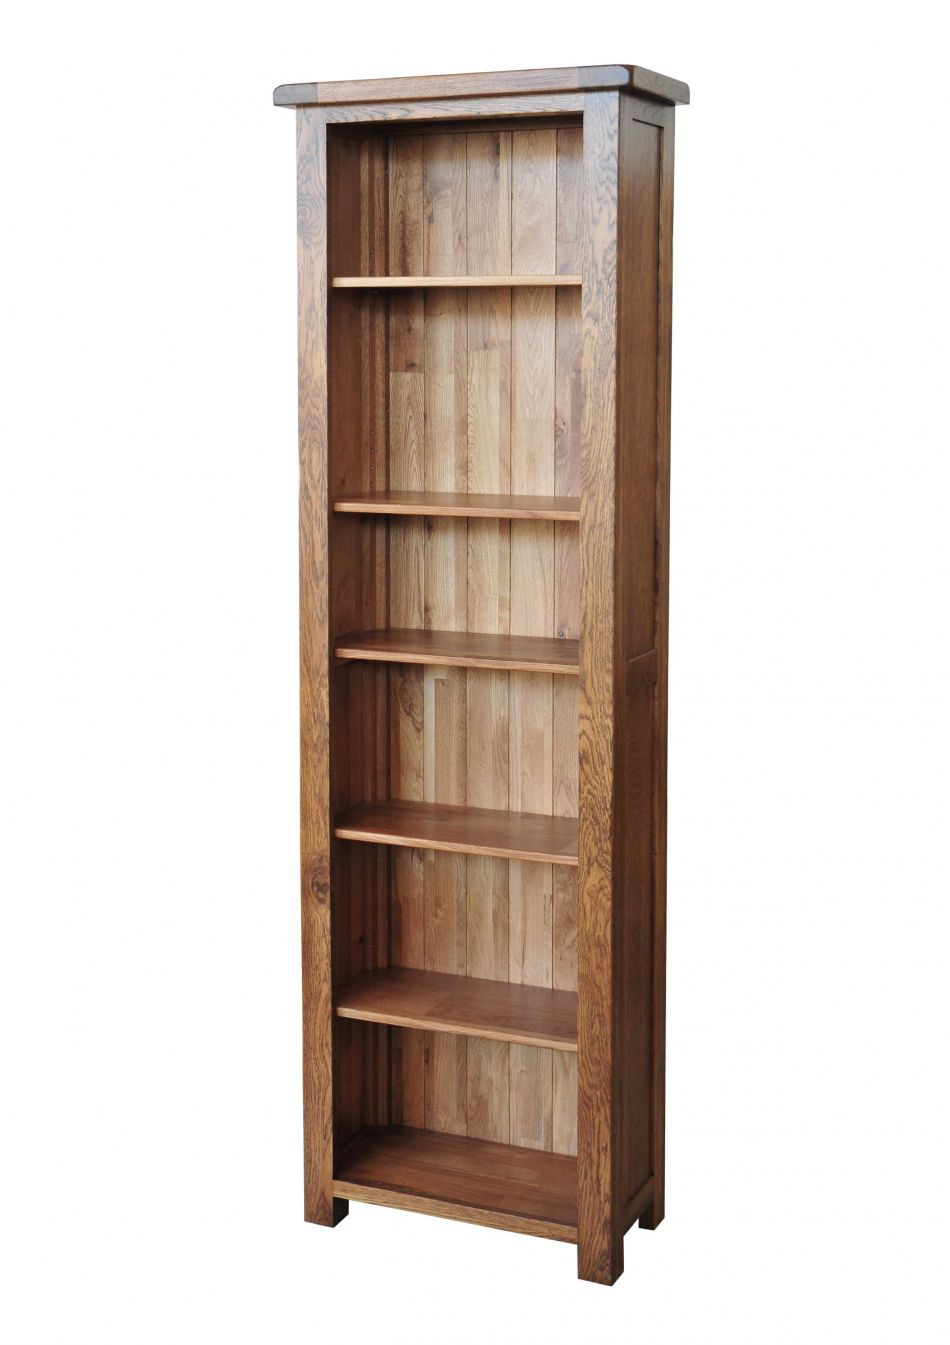 100 Narrow Wooden Bookcase Modern Classic Furniture Check More